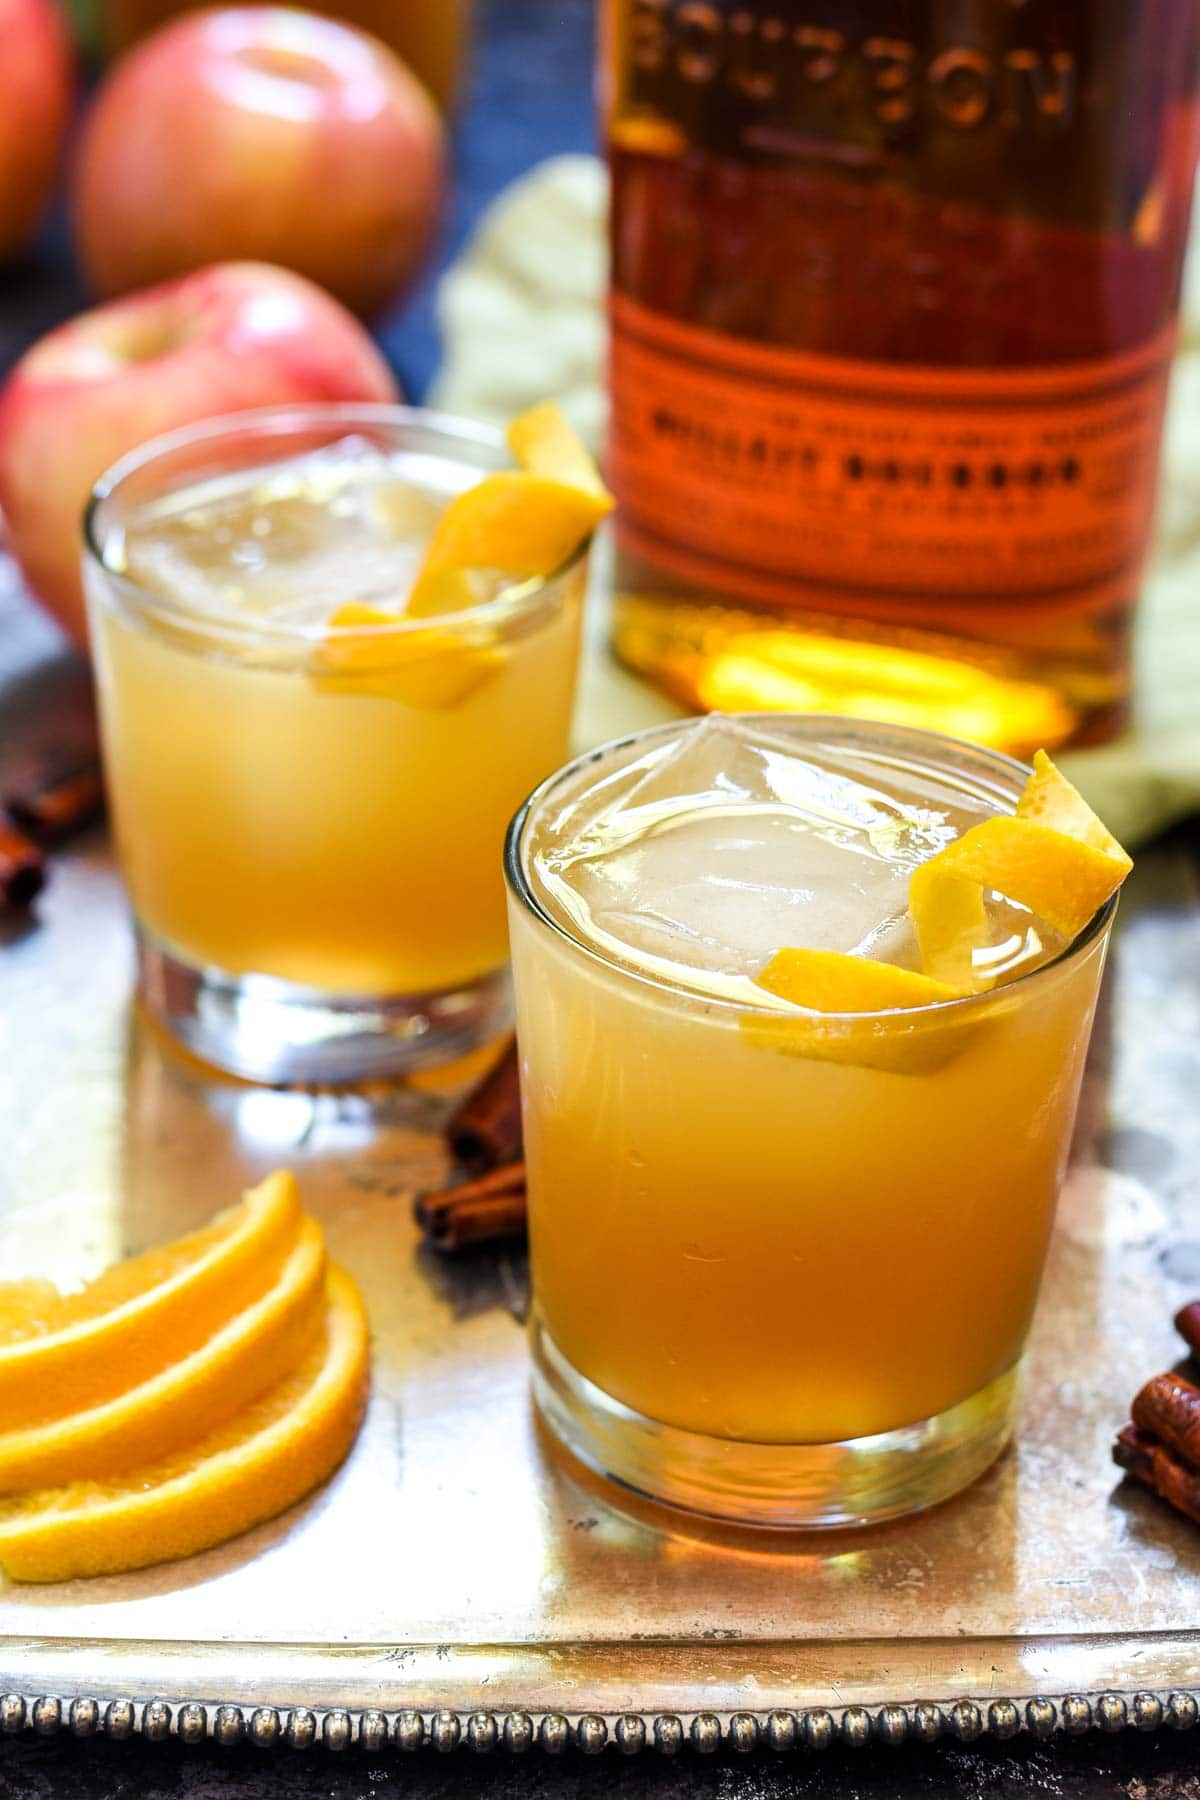 Two apple cider cocktails with ice and orange peel on a serving tray